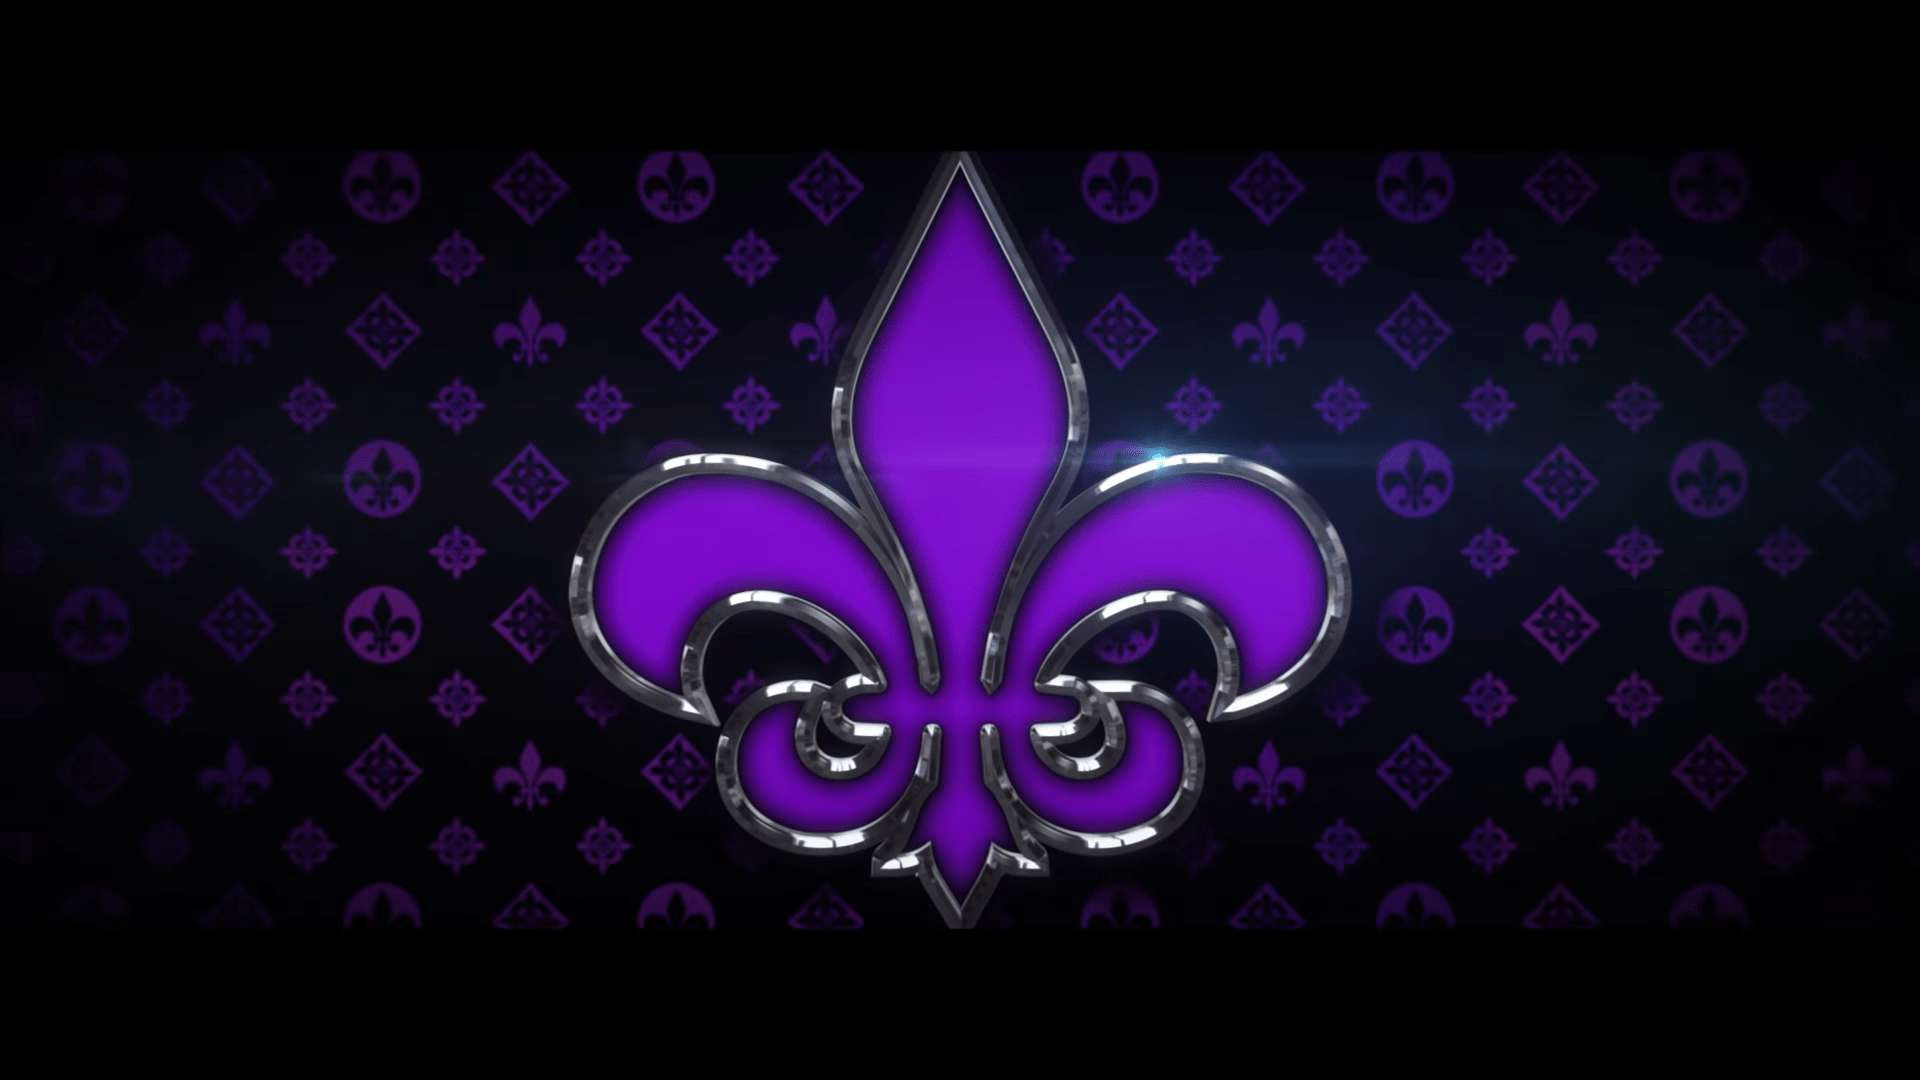 Deep Silver Confirms That The A New Saints Row Game Will Be Announced In 2020